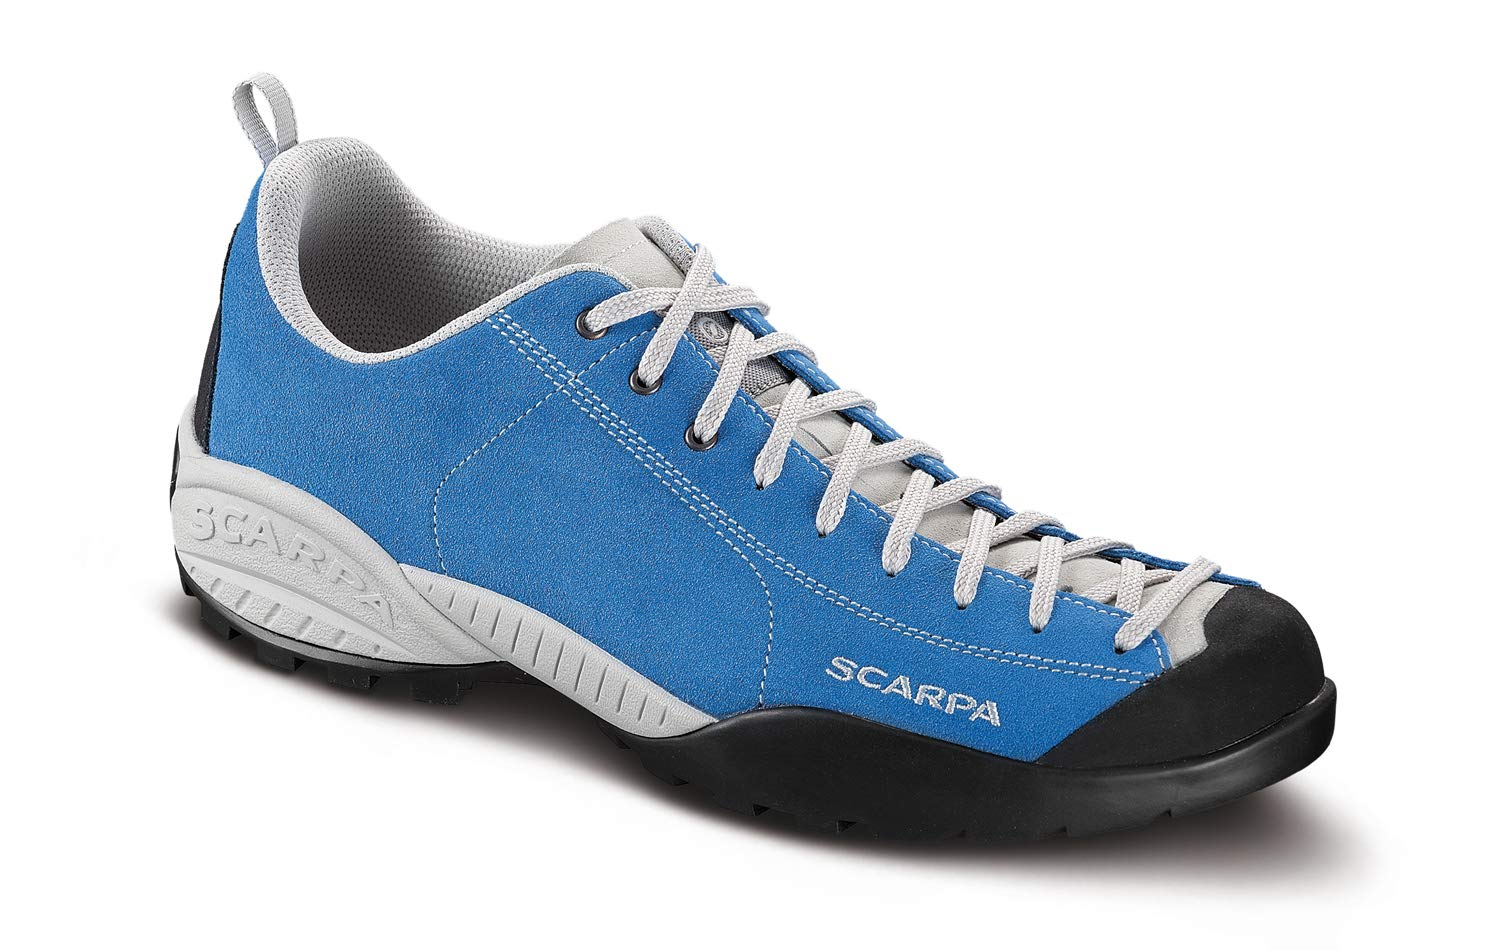 Scarpa Mojito - Turkish sea